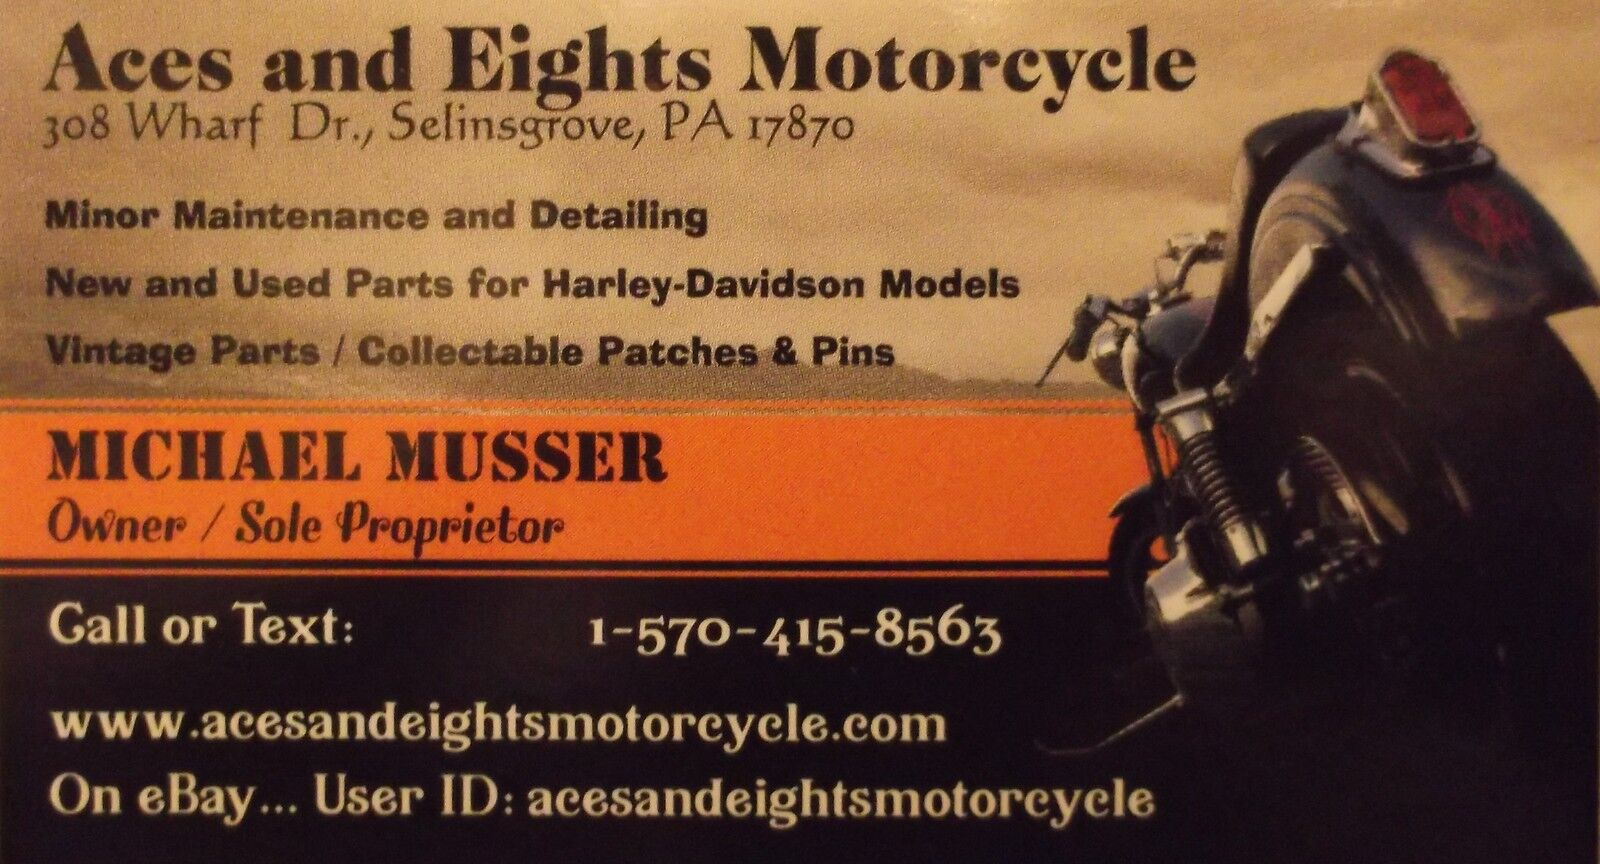 acesandeightsmotorcycle